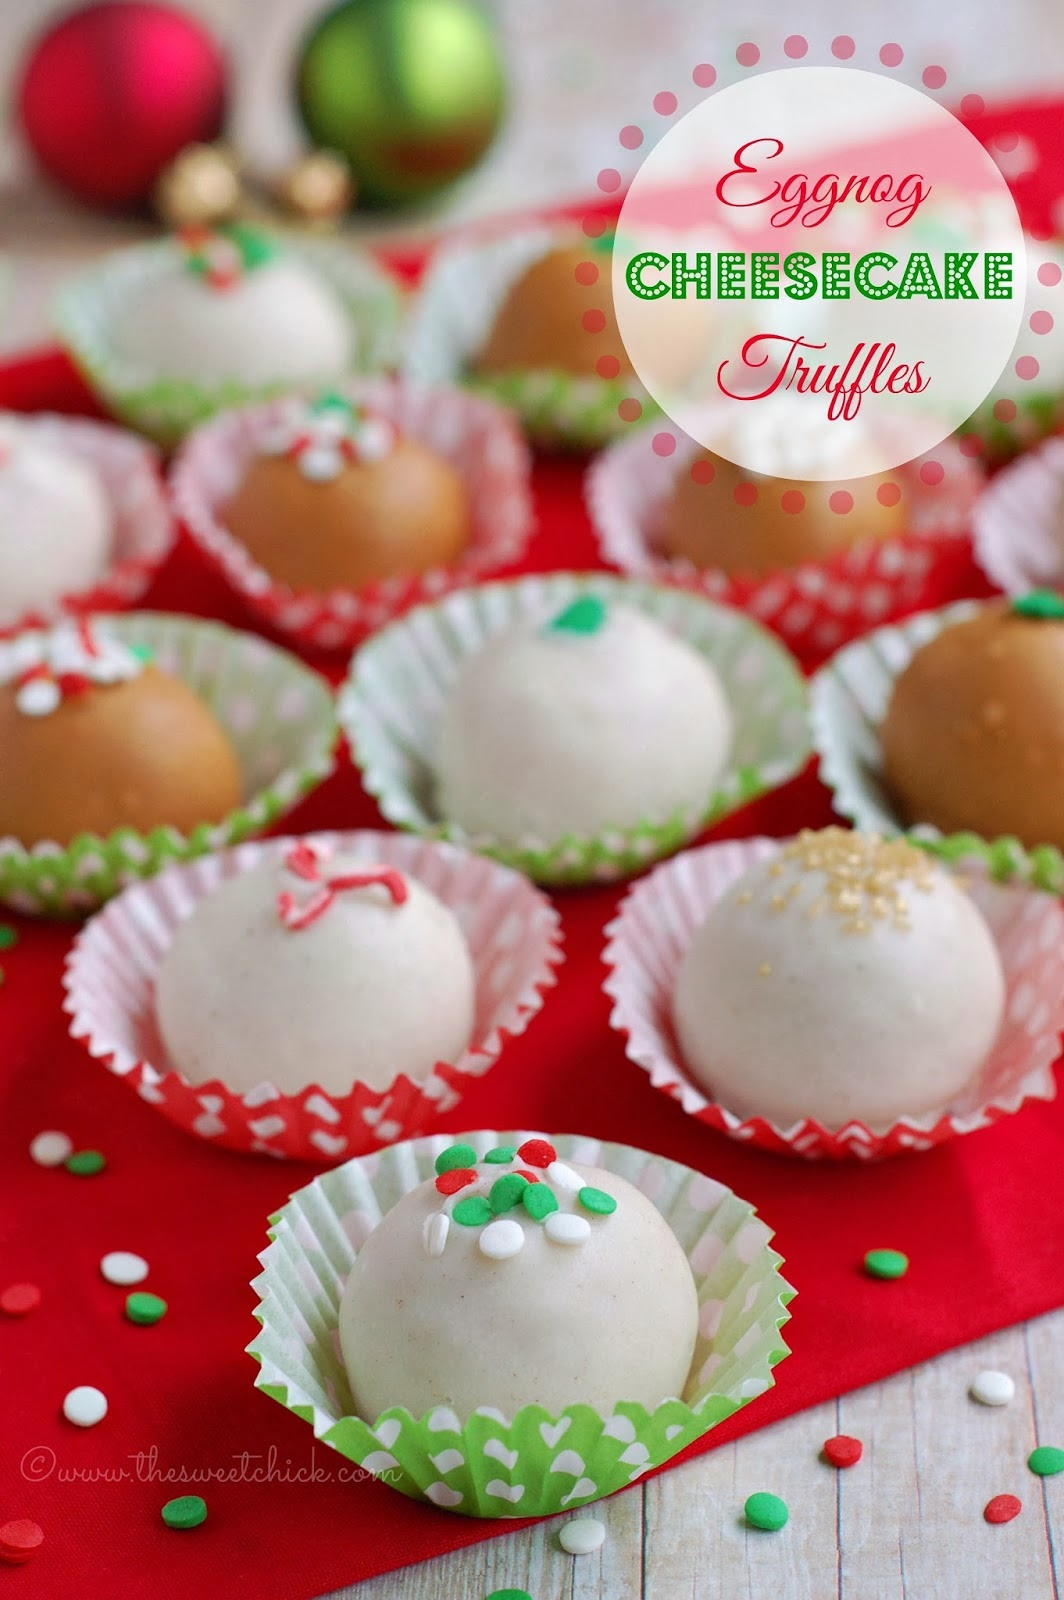 http://www.thesweetchick.com/2013/12/eggnog-cheesecake-truffles.html